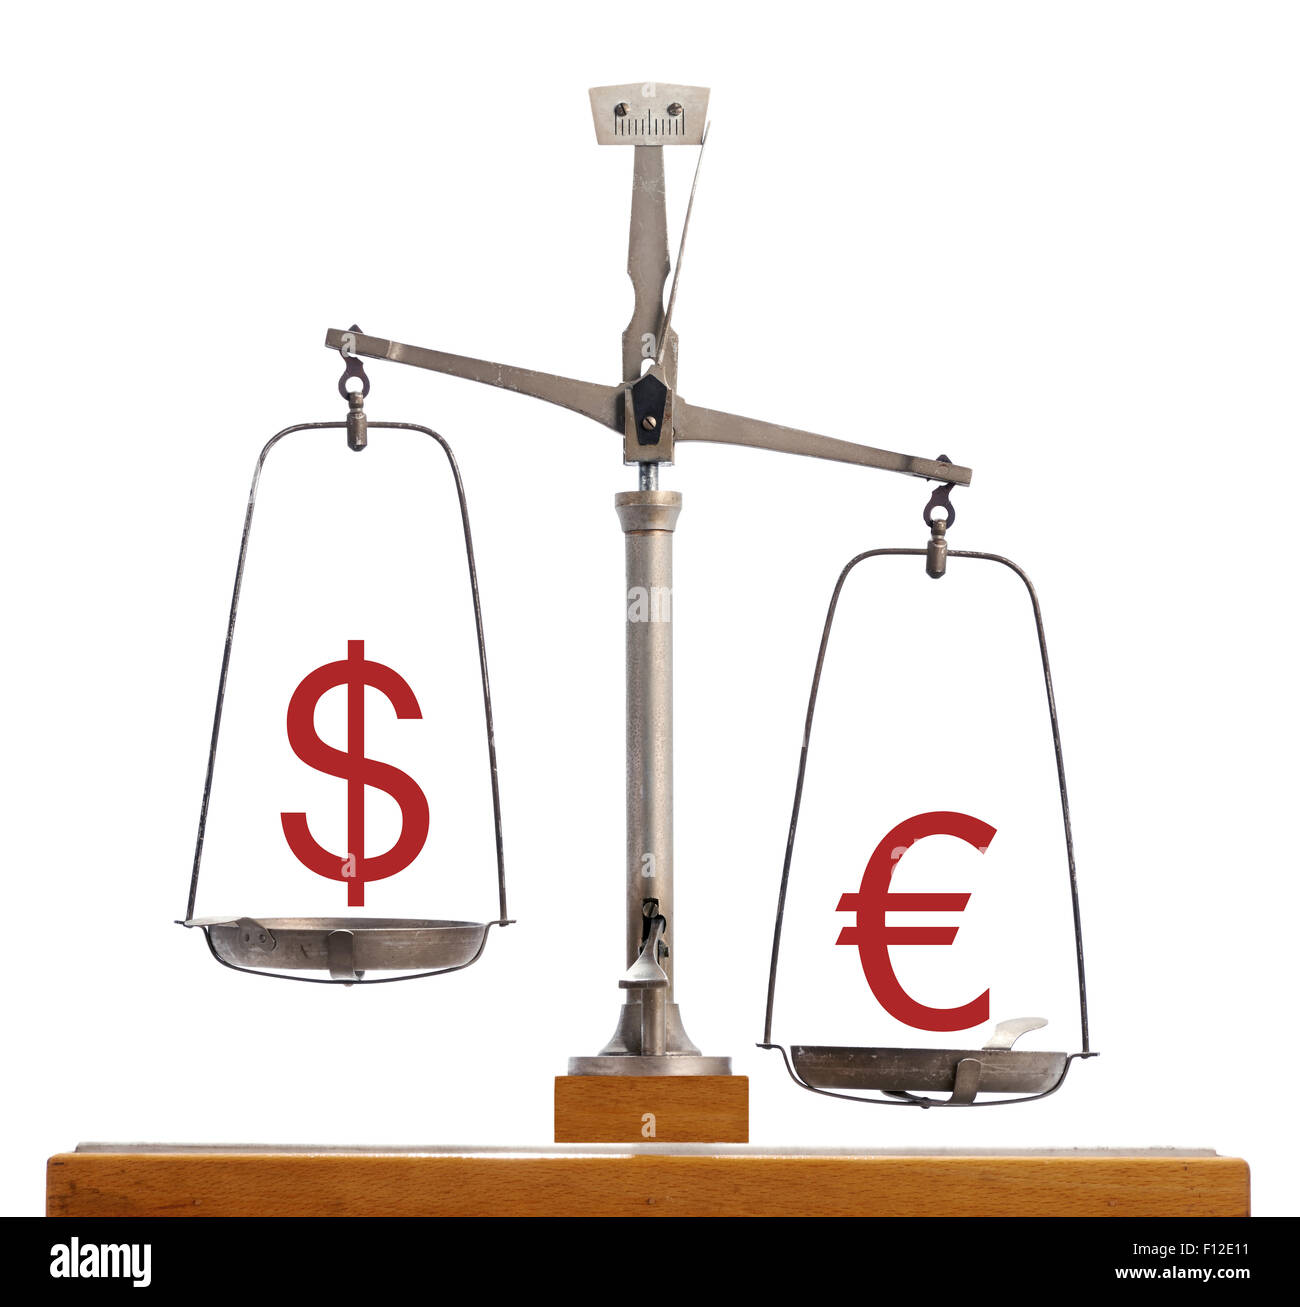 Dollar-Euro currency scale - Stock Image